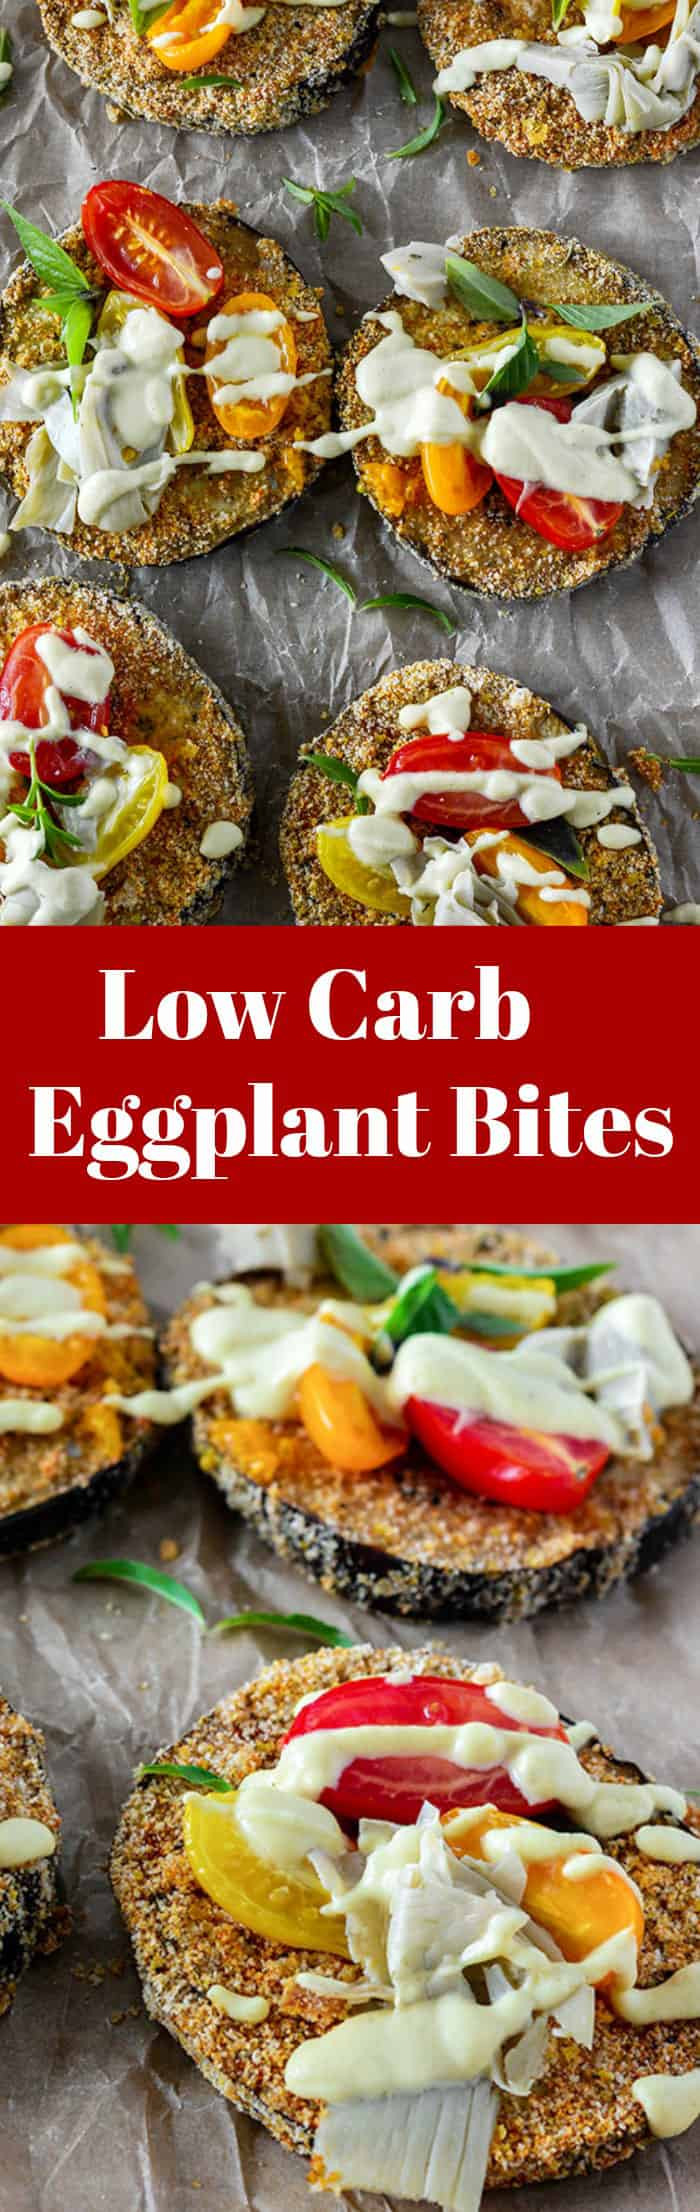 Low Carb Eggplant Bites